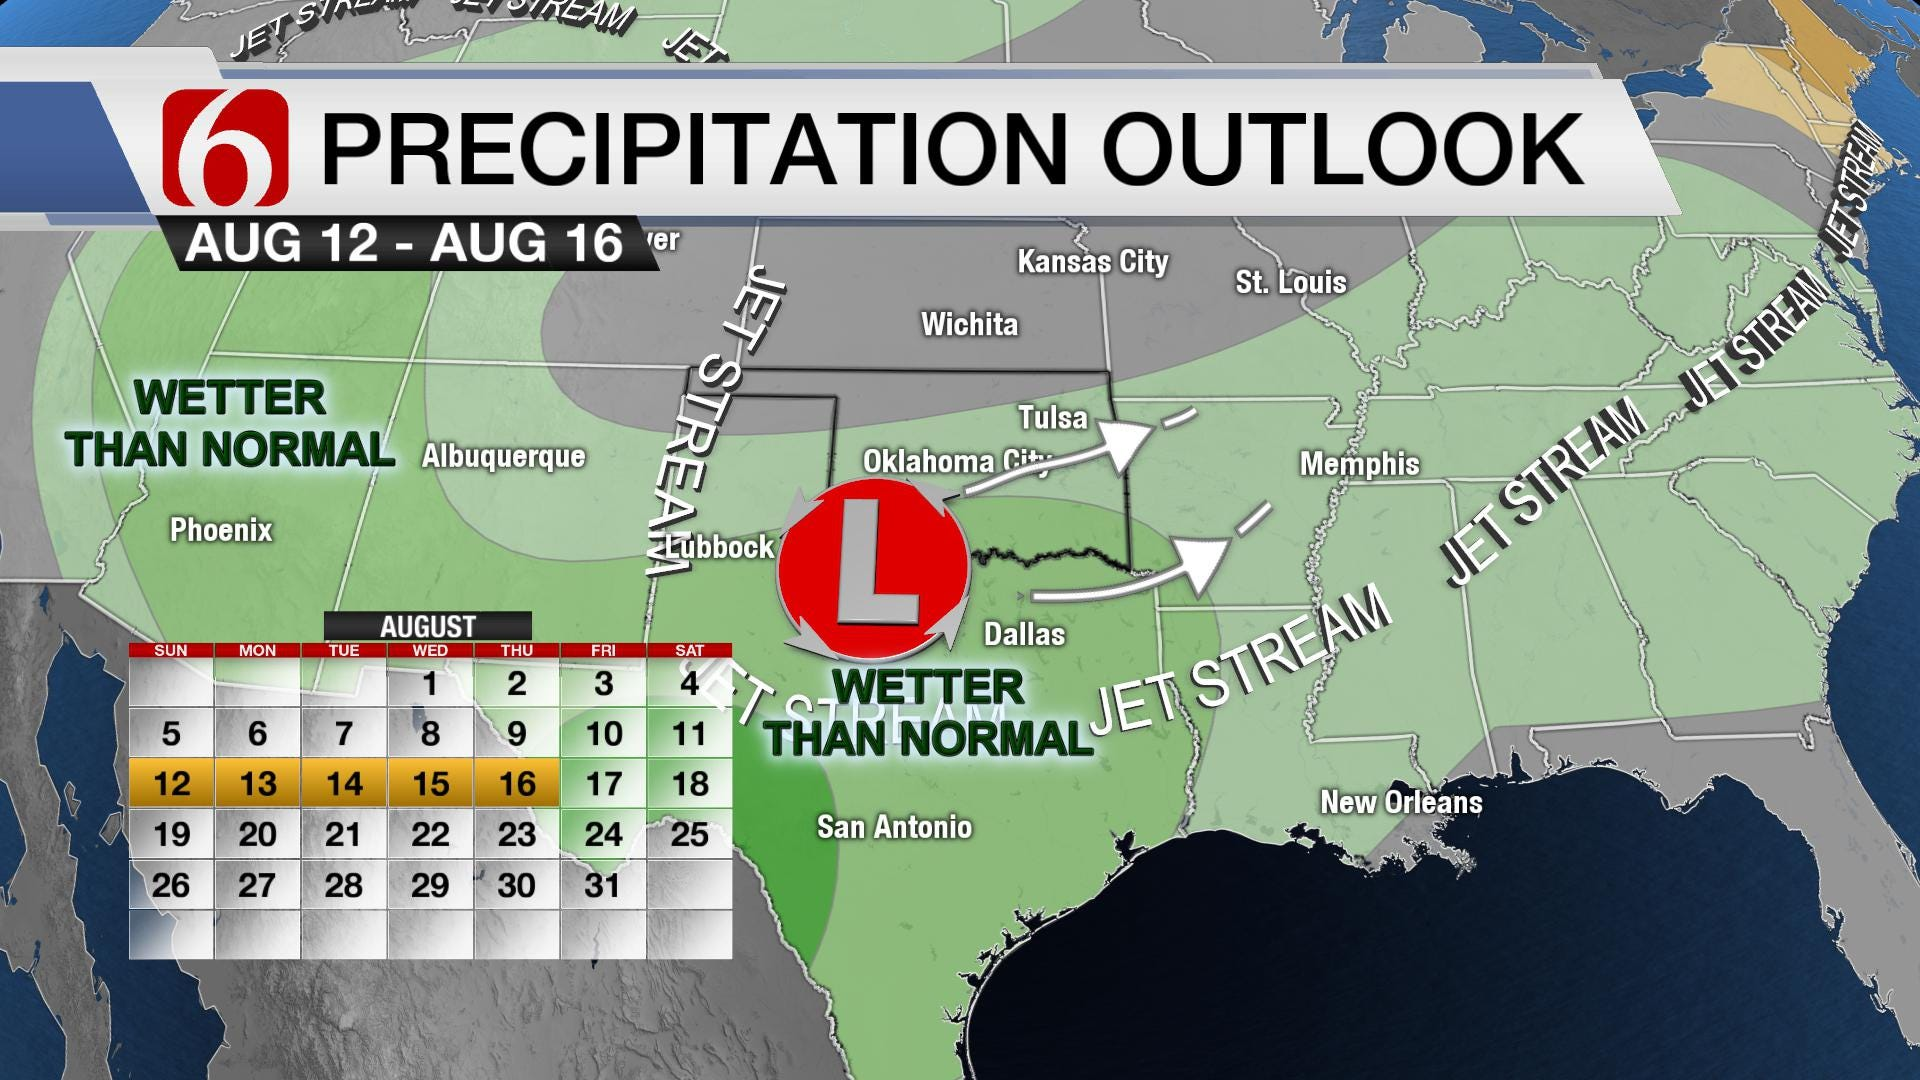 August Turning Unsettled for Oklahoma